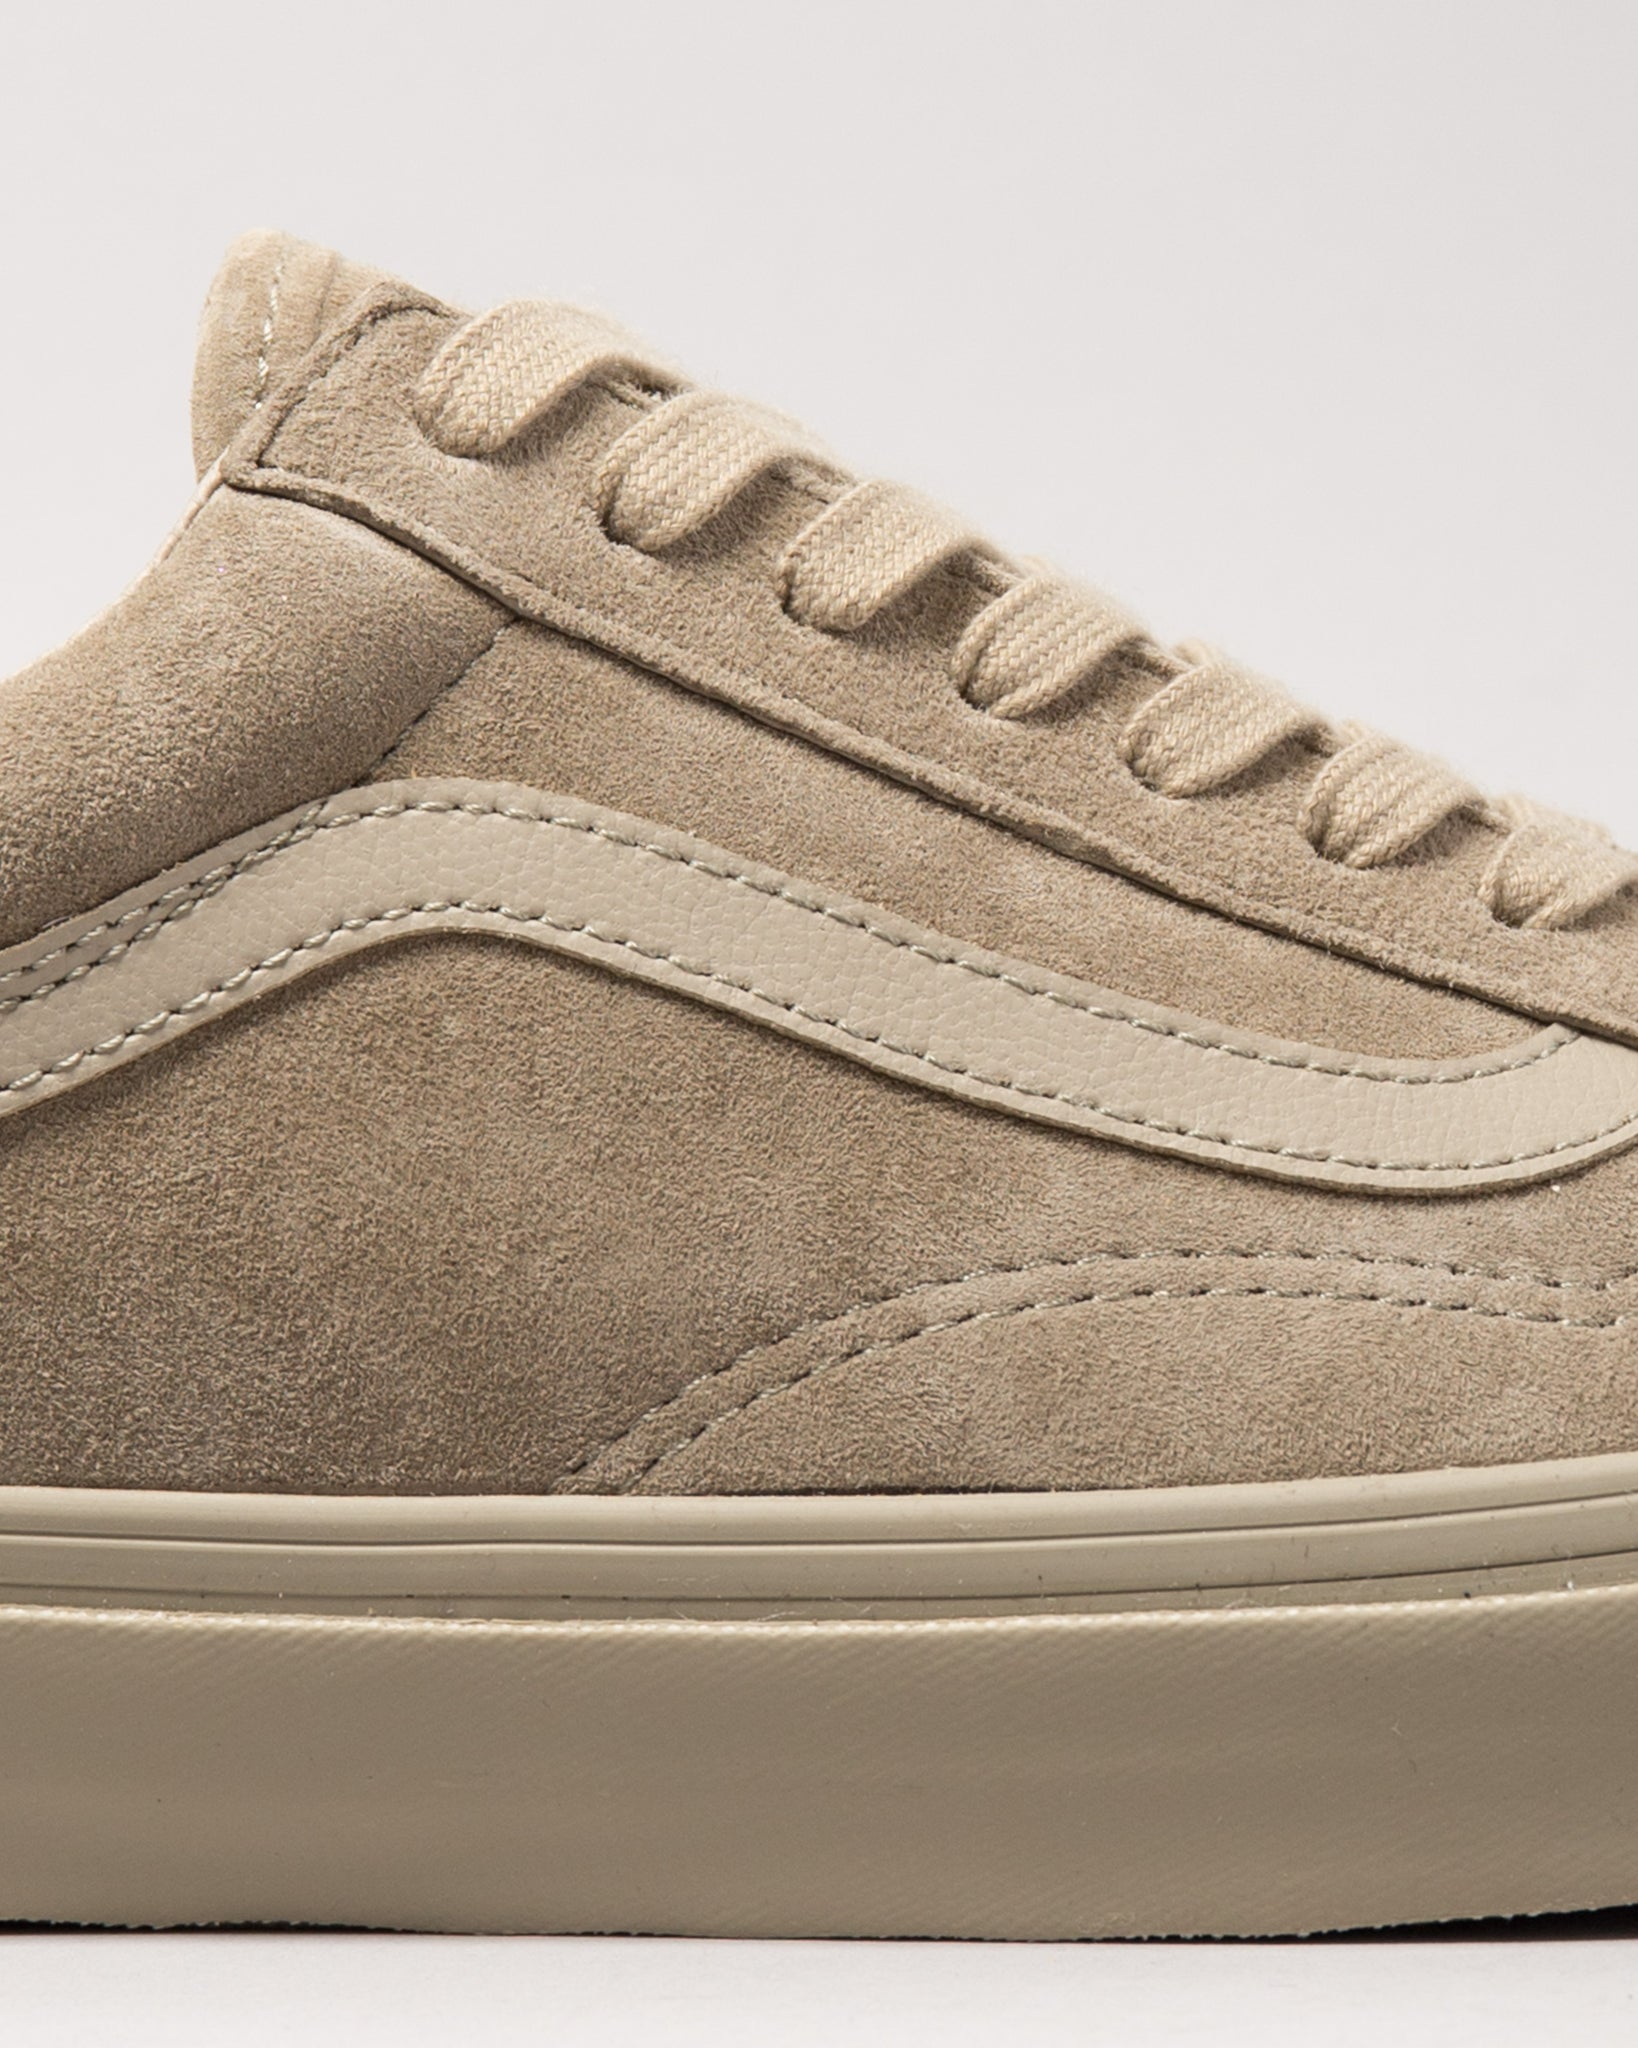 OG Old Skool LX Plaze Taupe